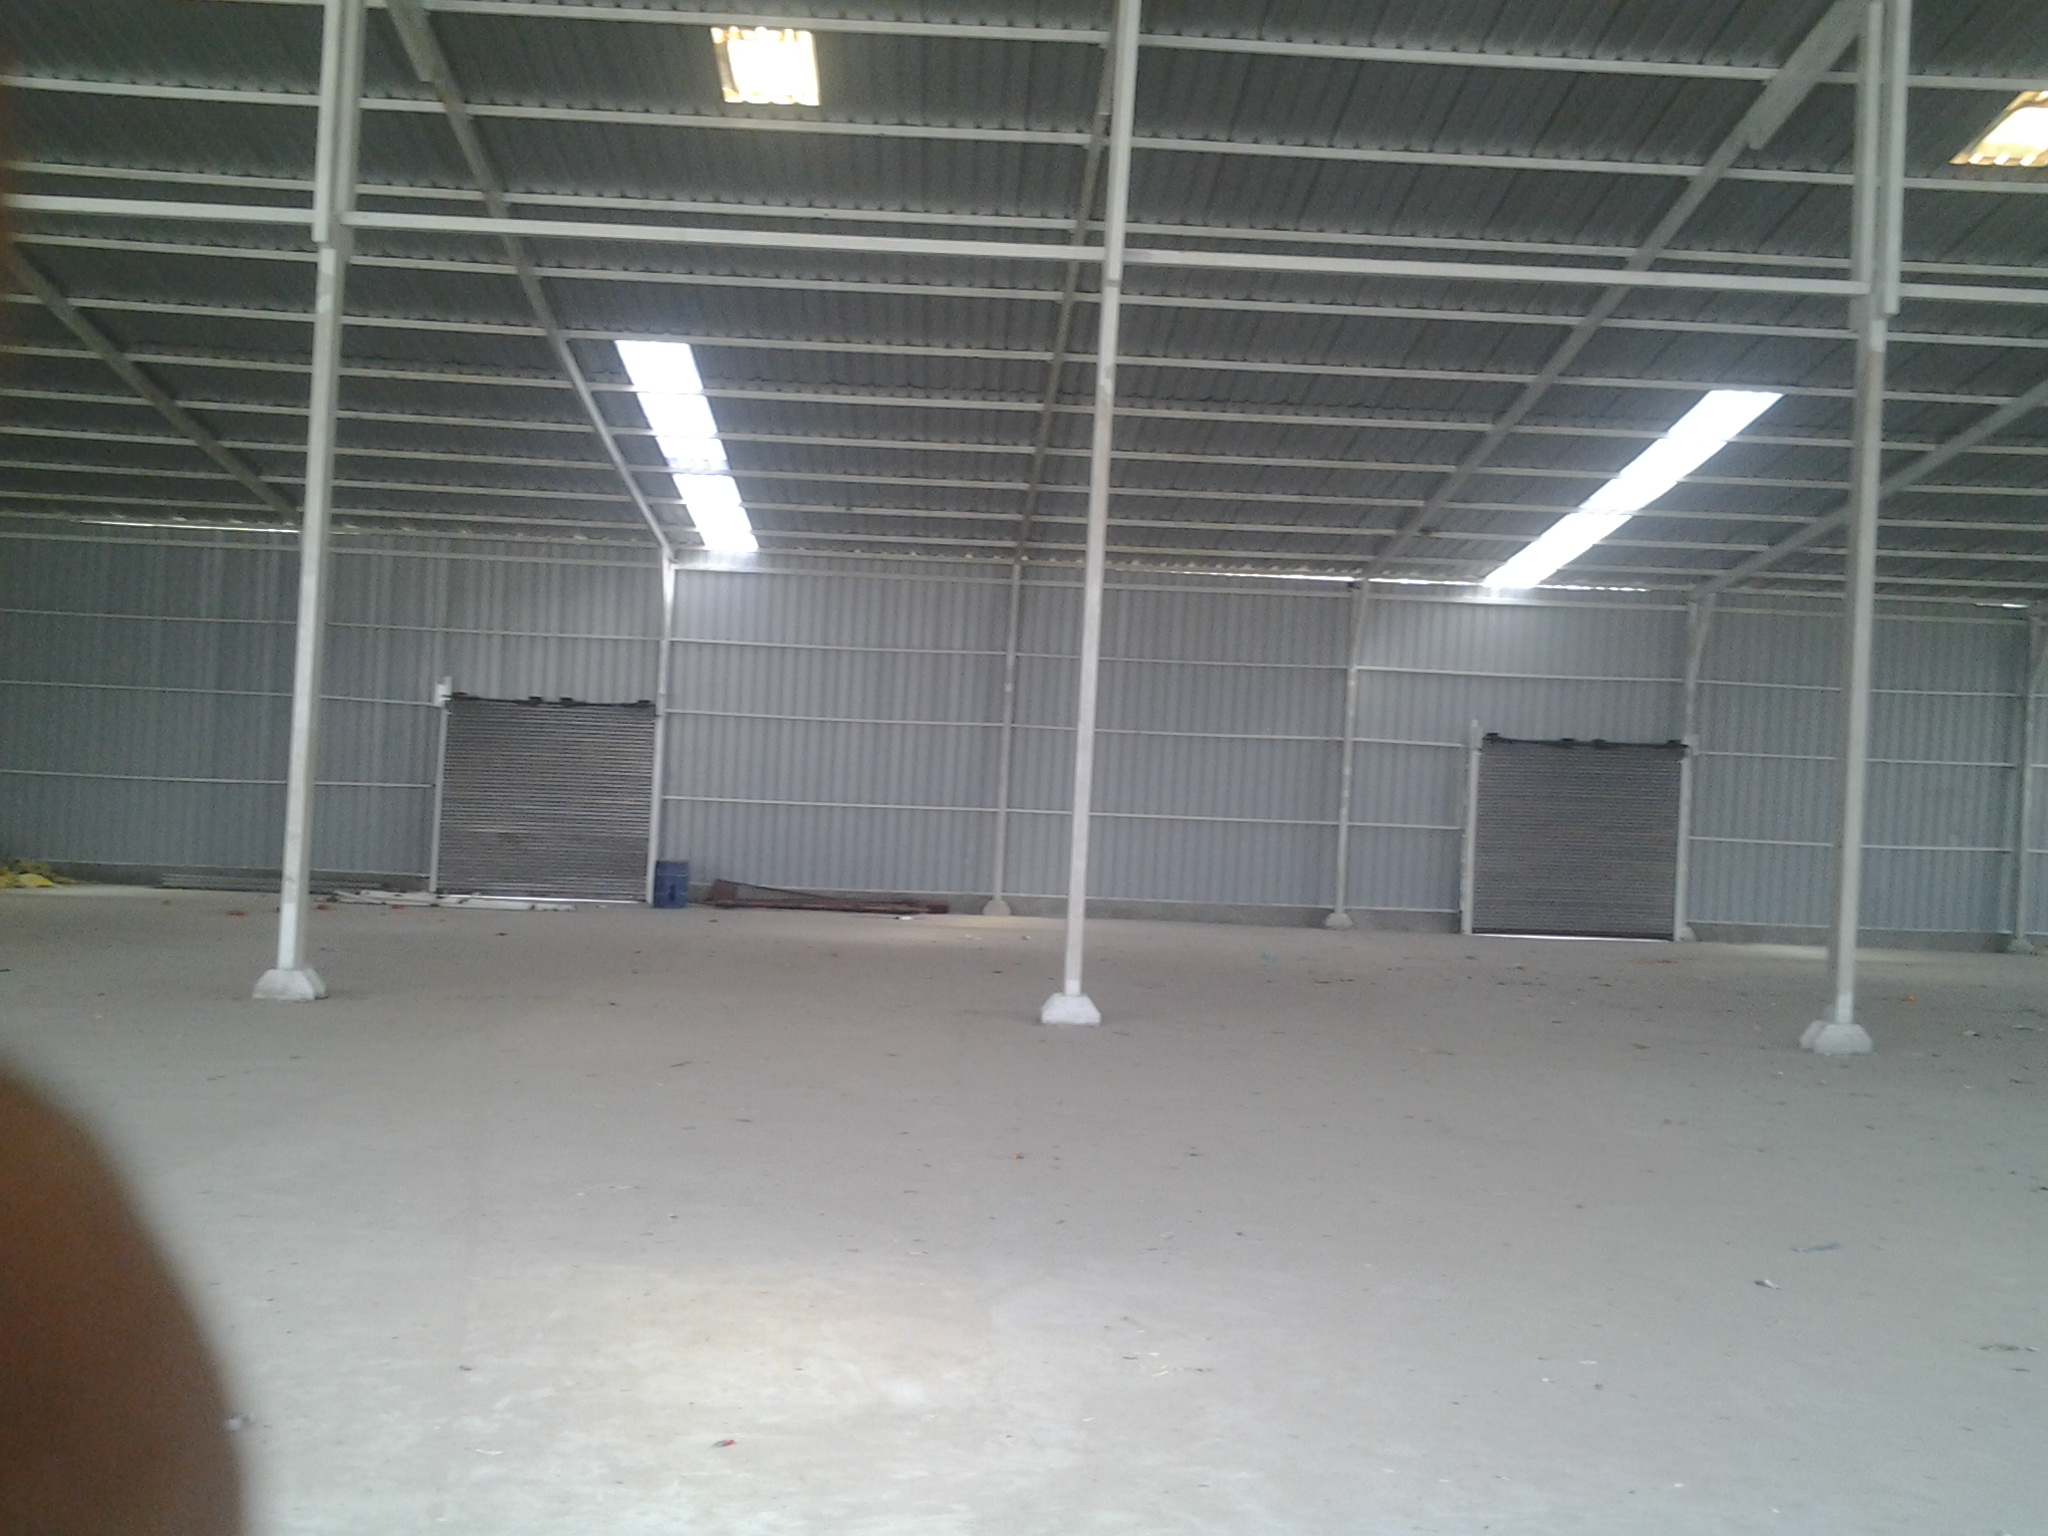 WAREHOUSE | GODOWN | STORAGE FOR RENT | LEASE IN VITTHALAPUR , MEHSANA – 9825249510